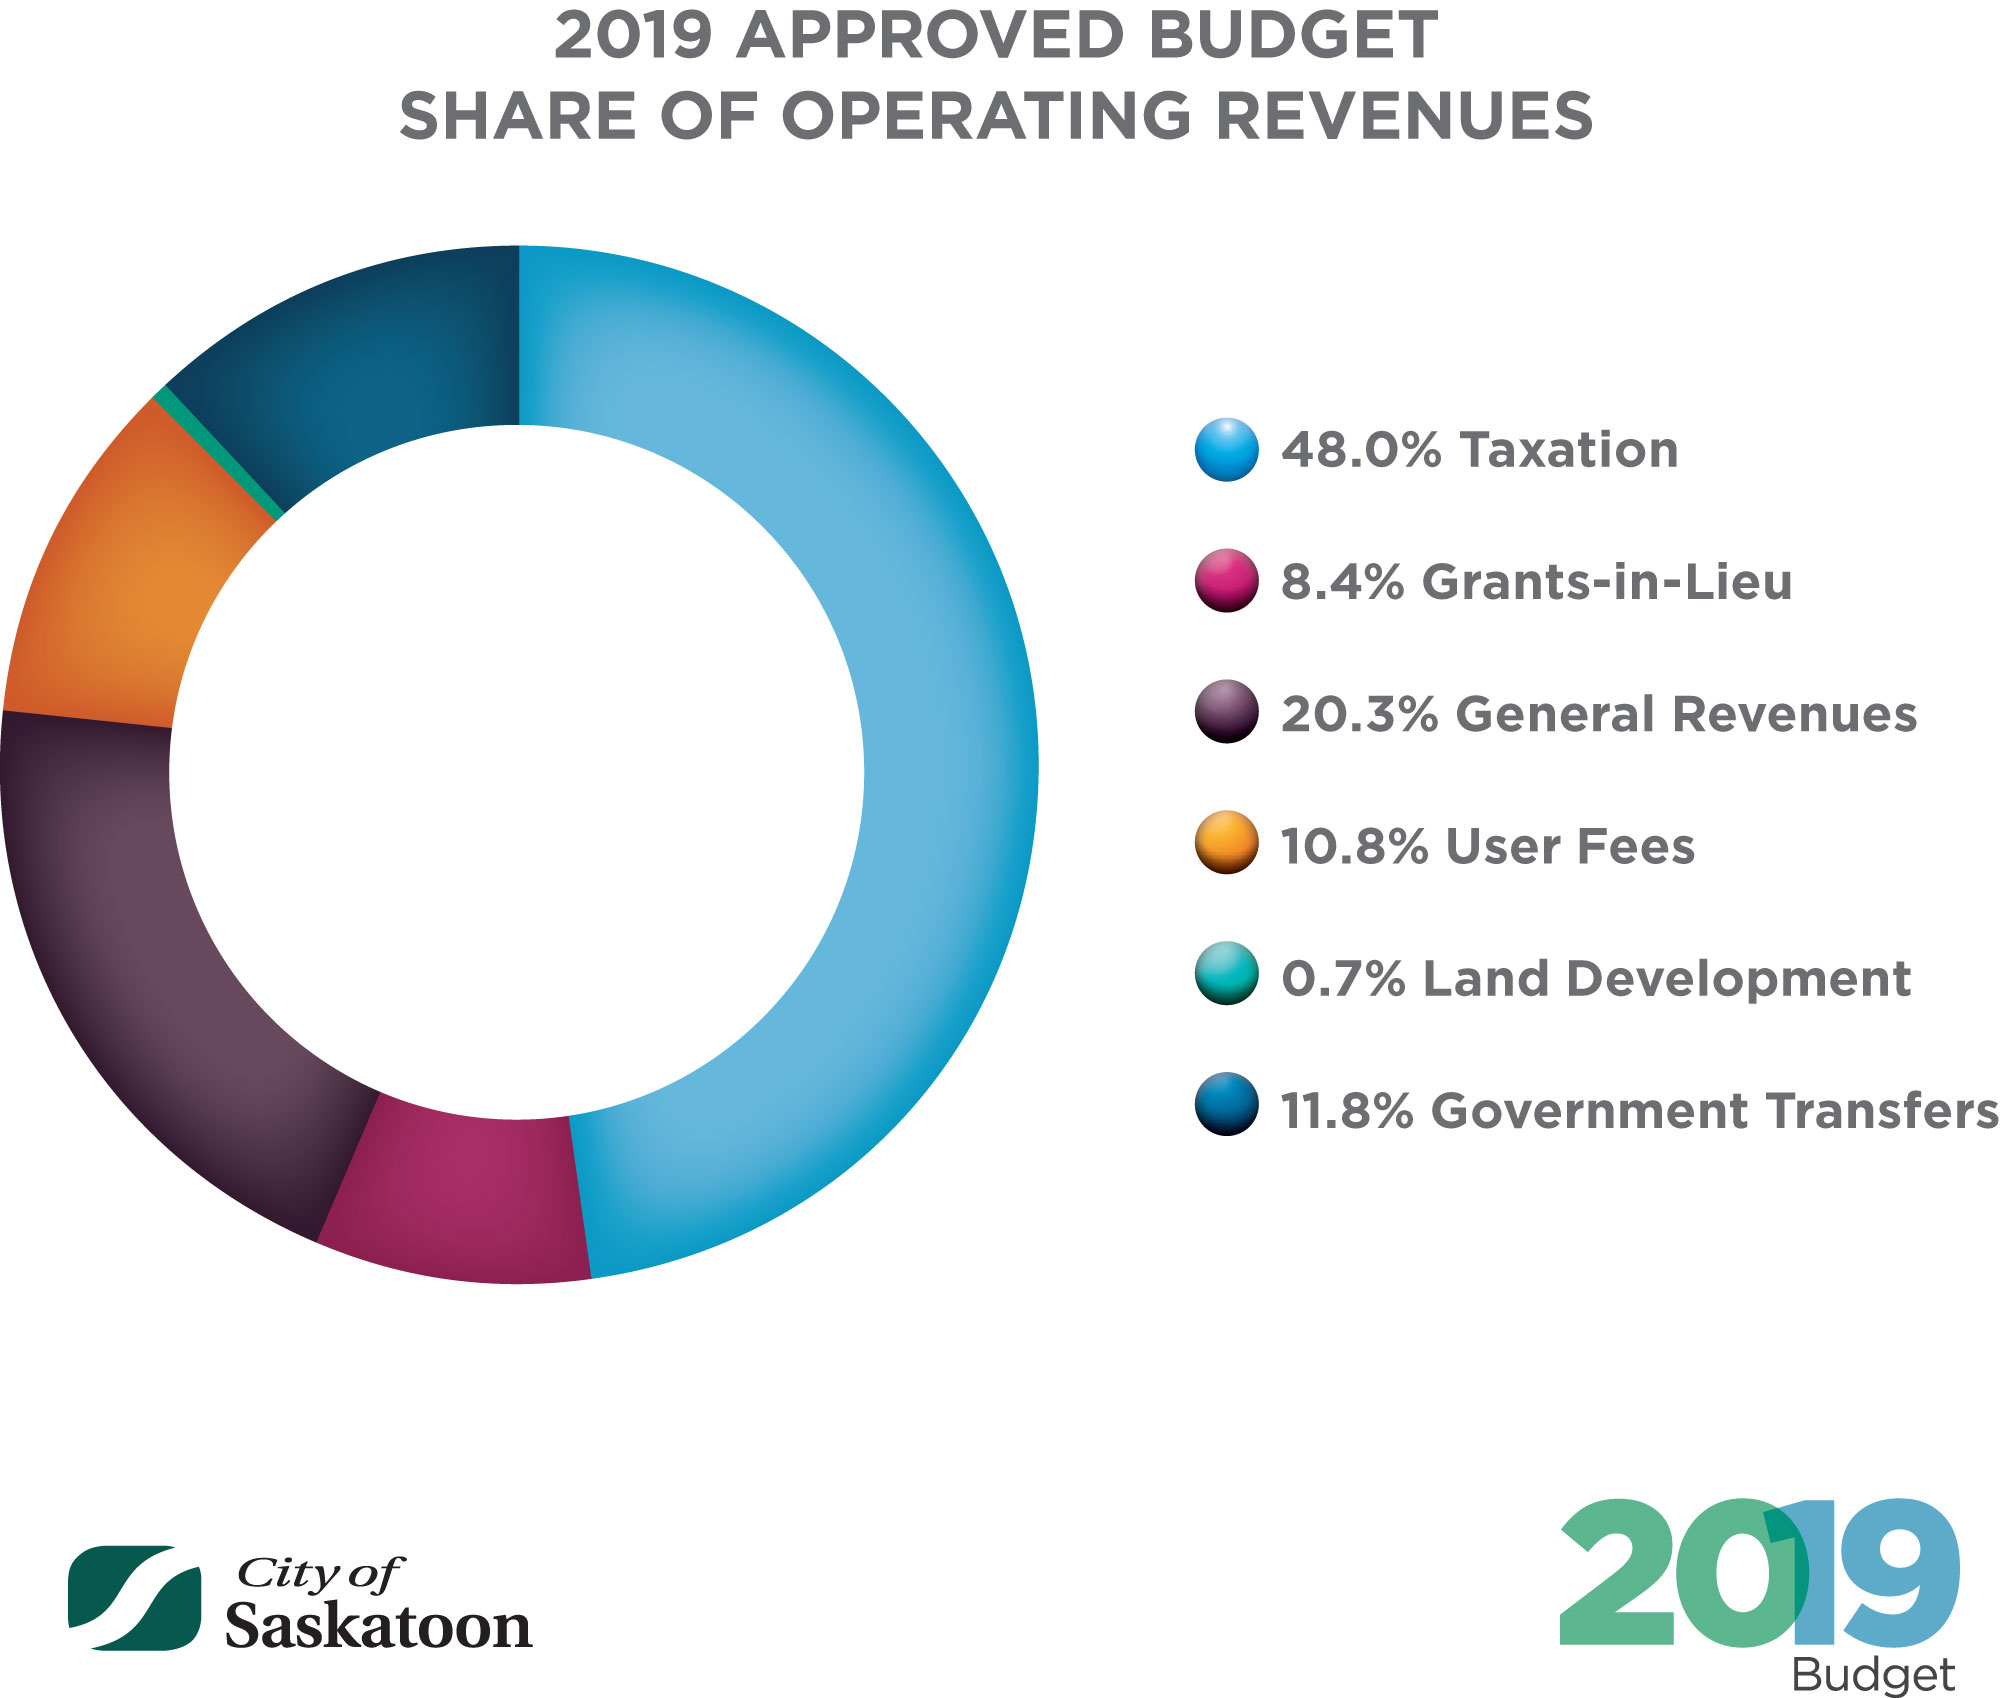 2019_APPROVED_BUDGET_SHARE_OF_OPERATING_REVS_DEC_13.jpg